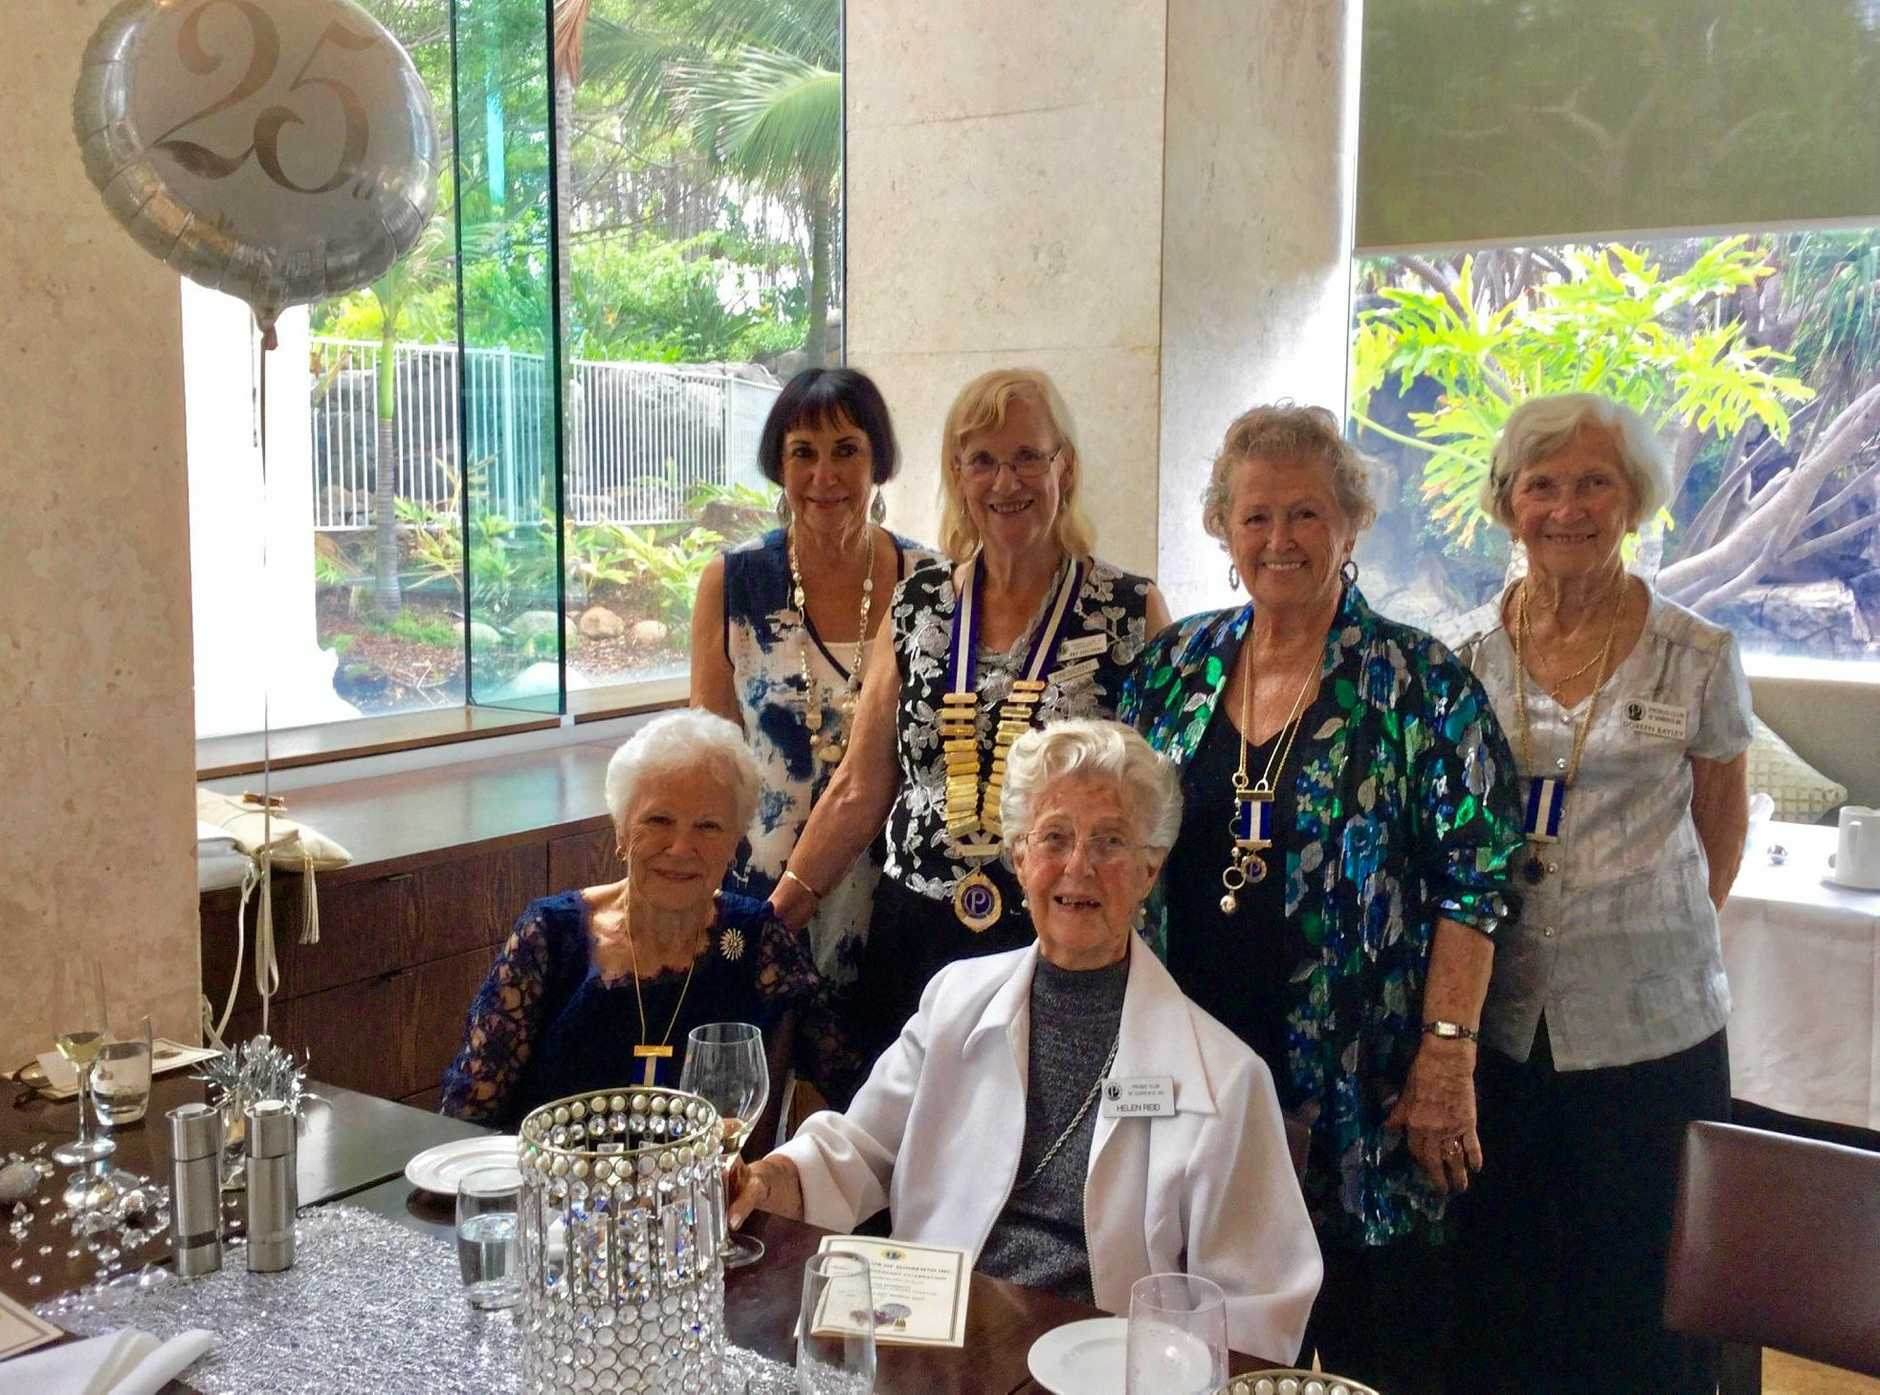 The Sorrento Probus Club celebrated their Silver Anniversary at Surfers Marriott Resort recently. A mixed club enjoying many community activities.